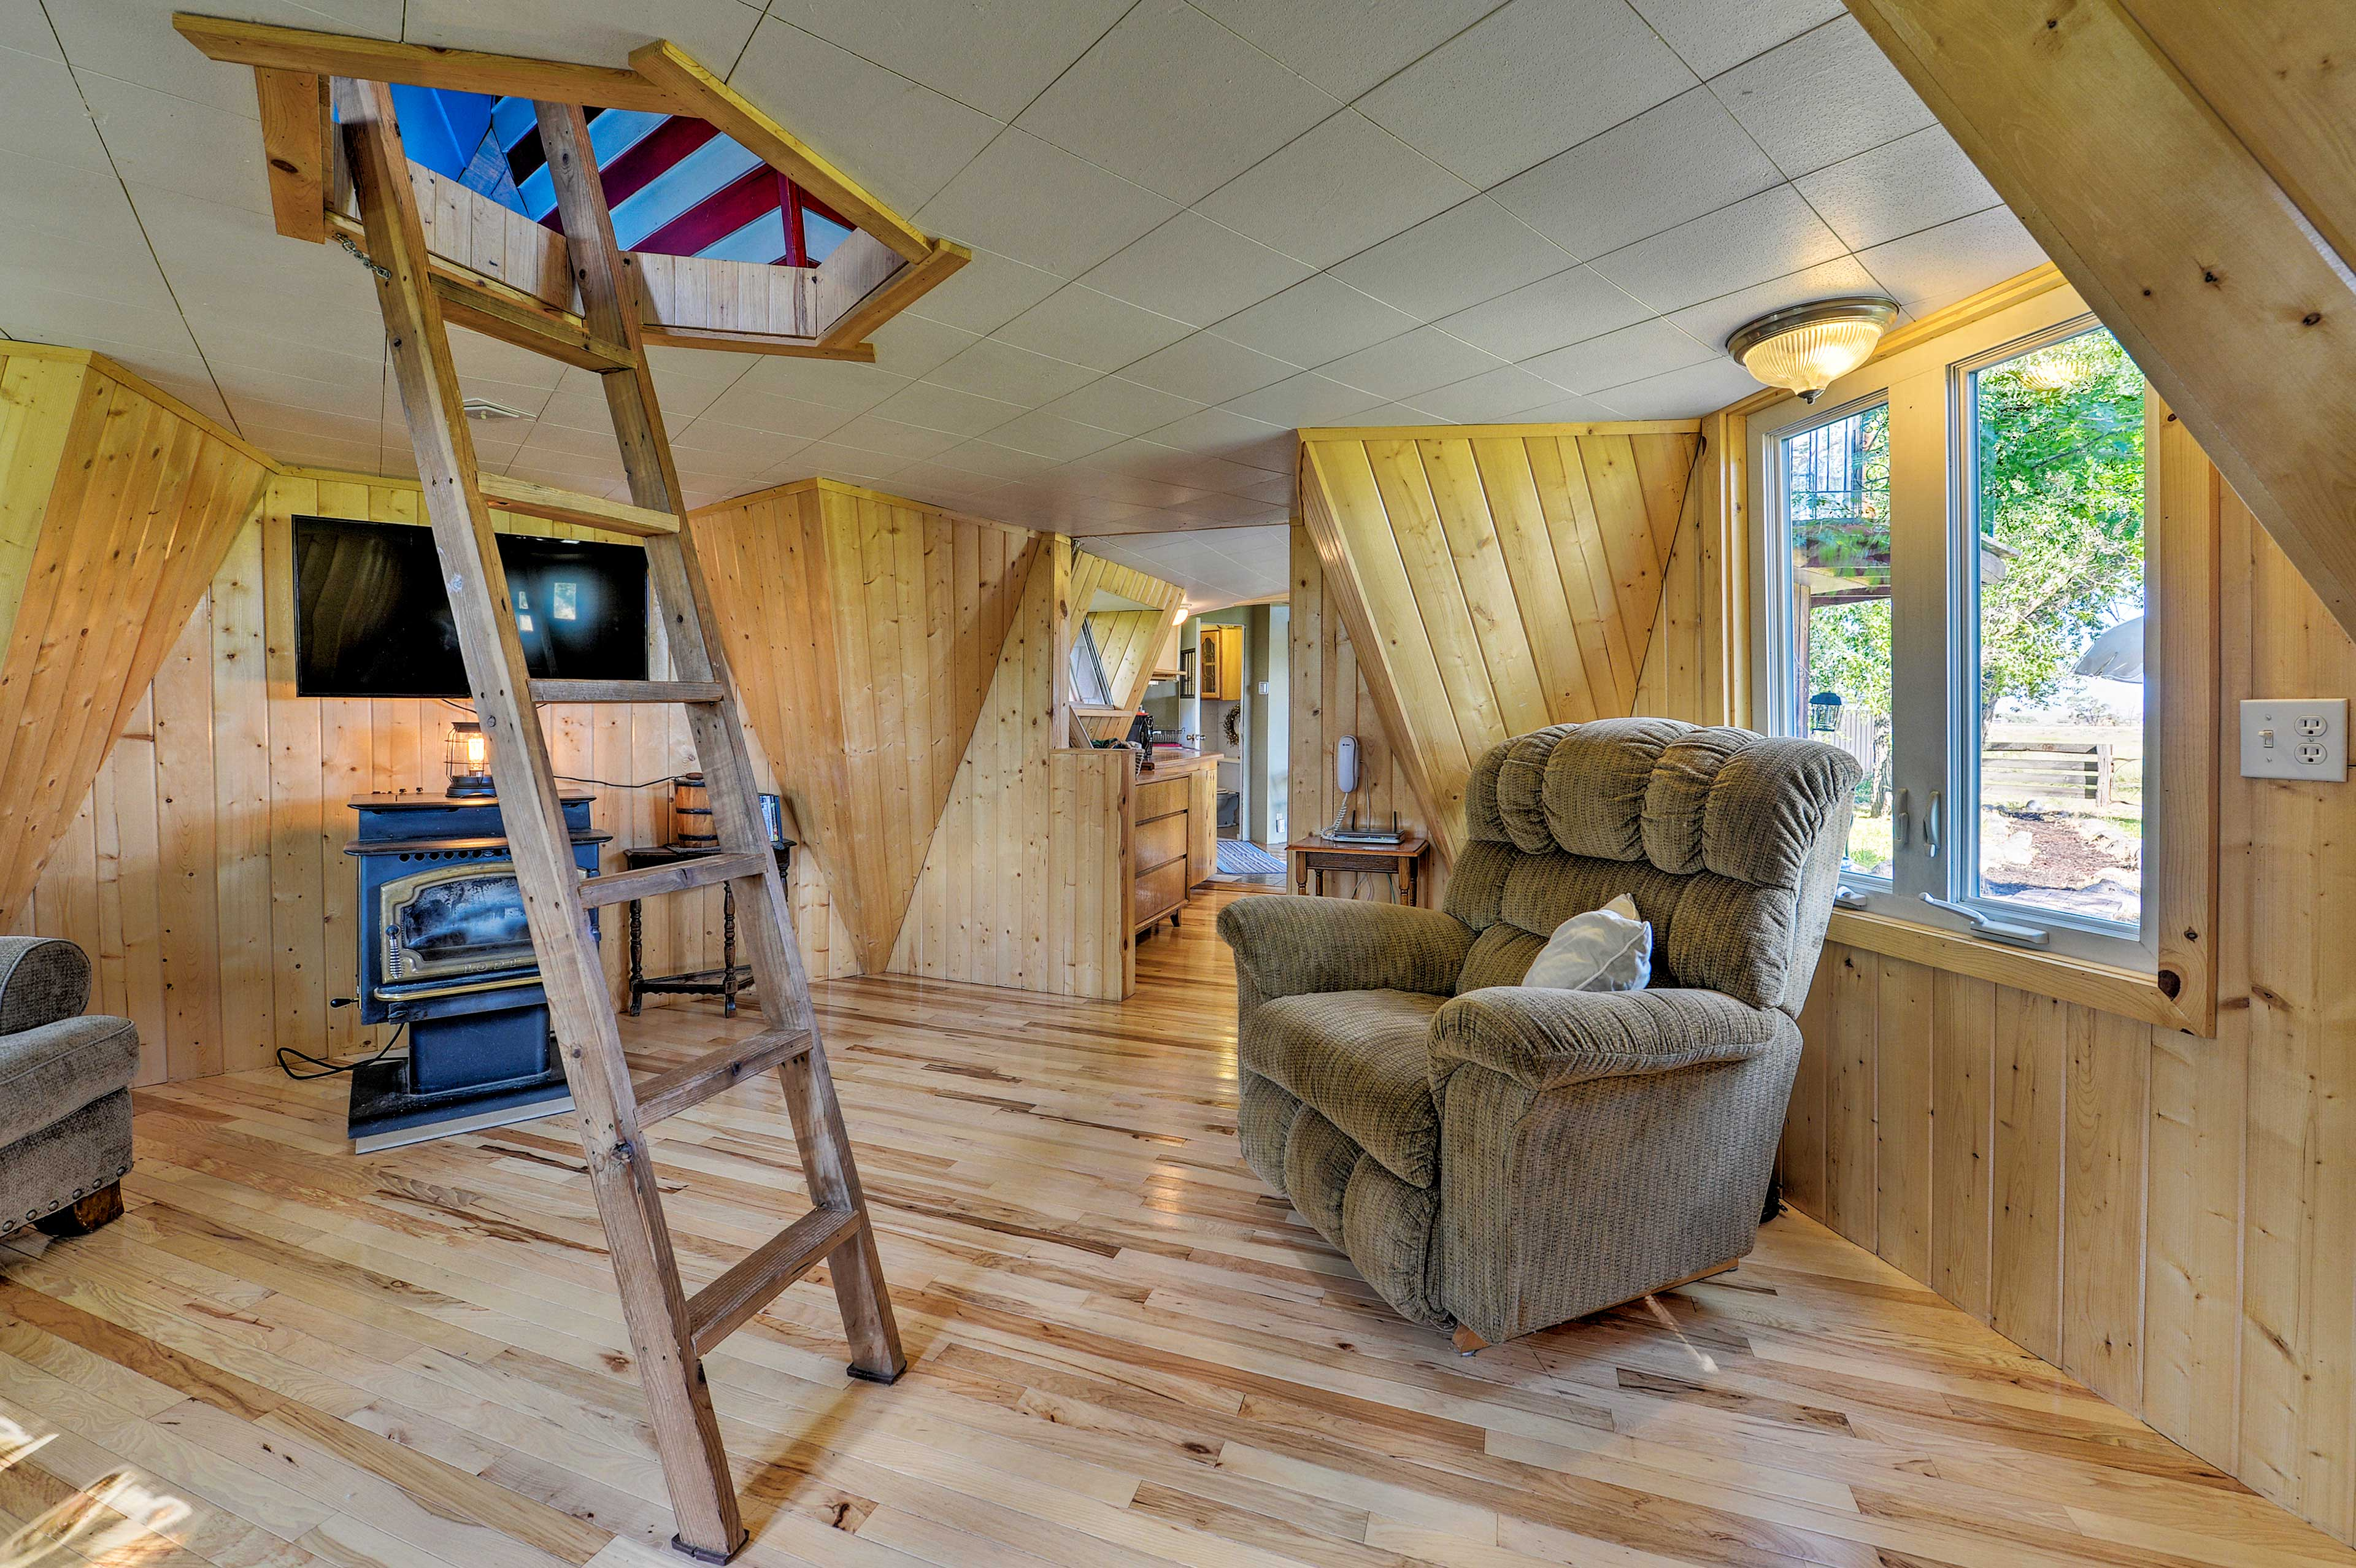 The living room features a ladder to the loft area.